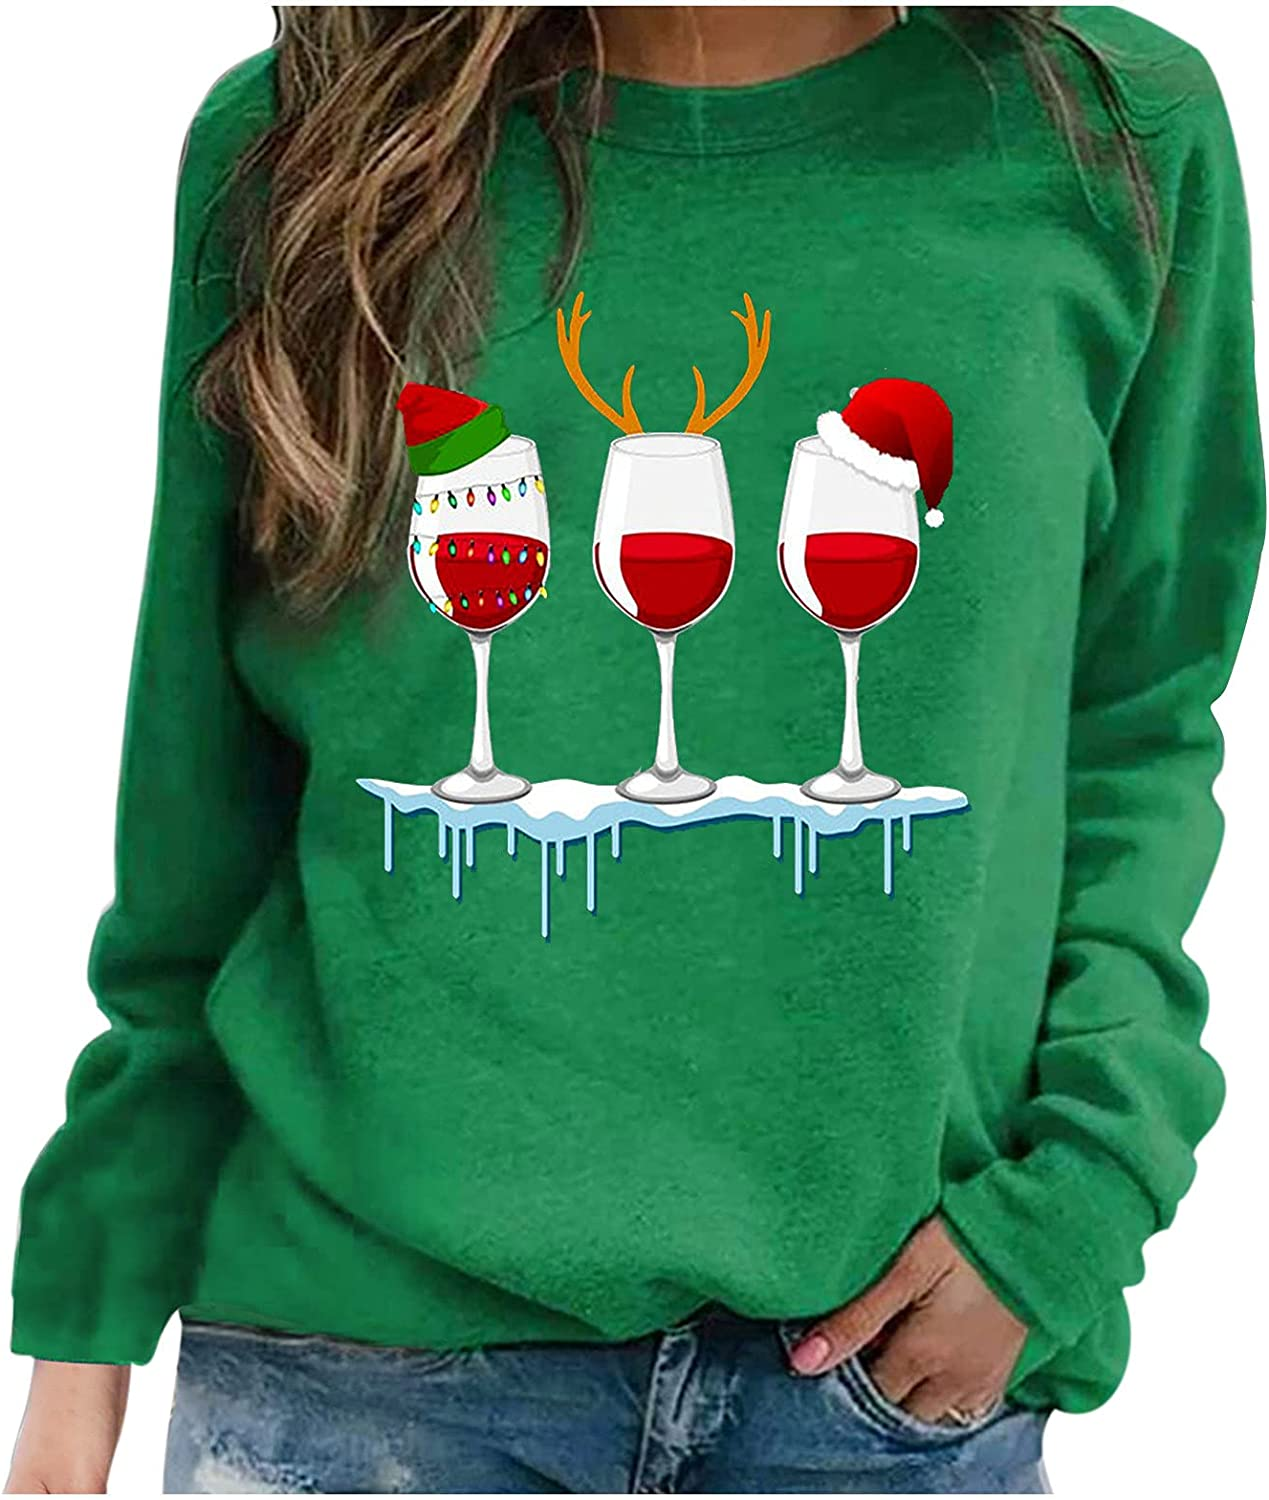 Merry Christmas Shirts for Women Casual Long Sleeve Crewneck Sweatshirt Cute Glass Graphic Tee Loose Fit Pullover Tops